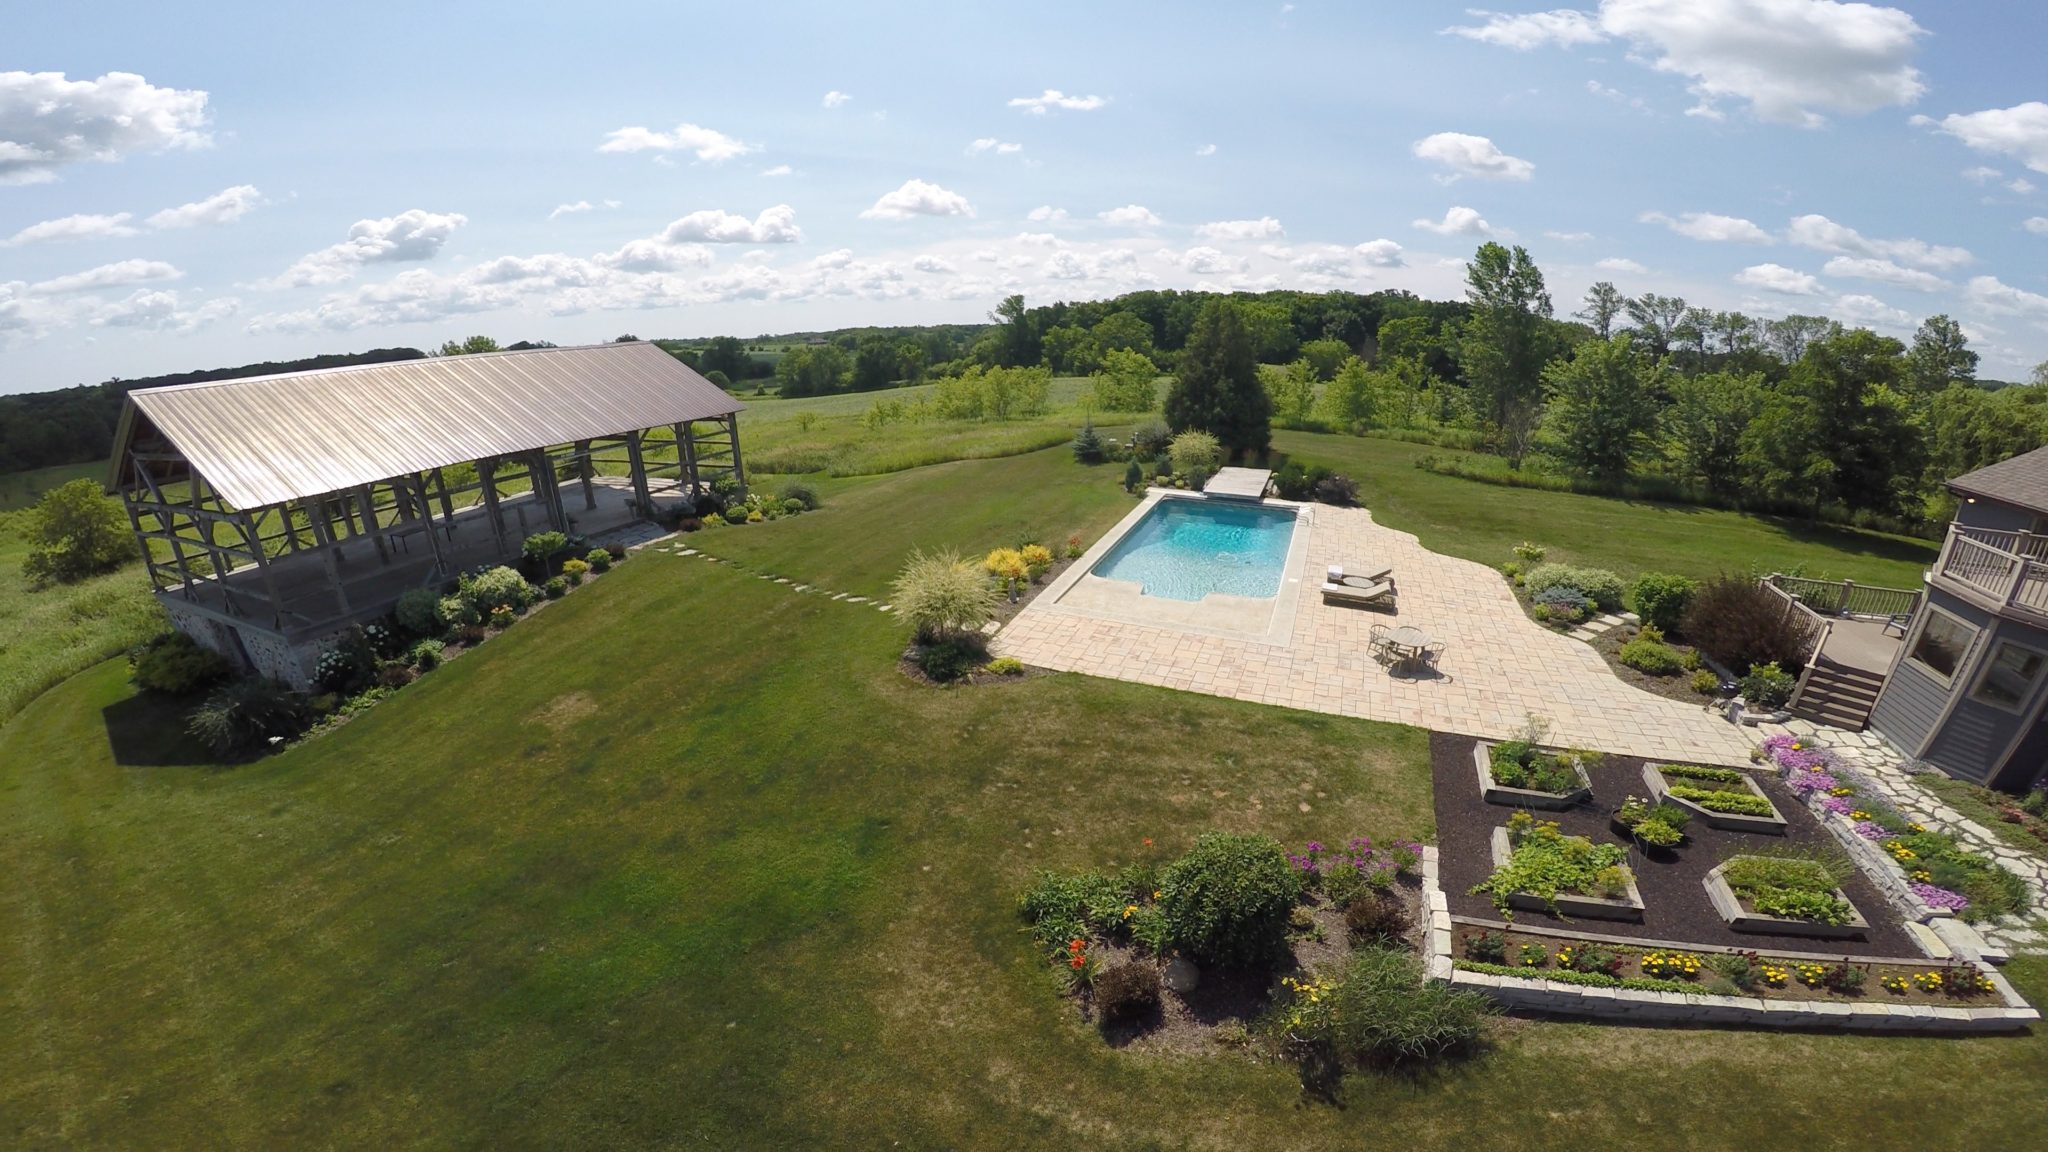 Drone Skytography Services Fox Valley Web Design Llc